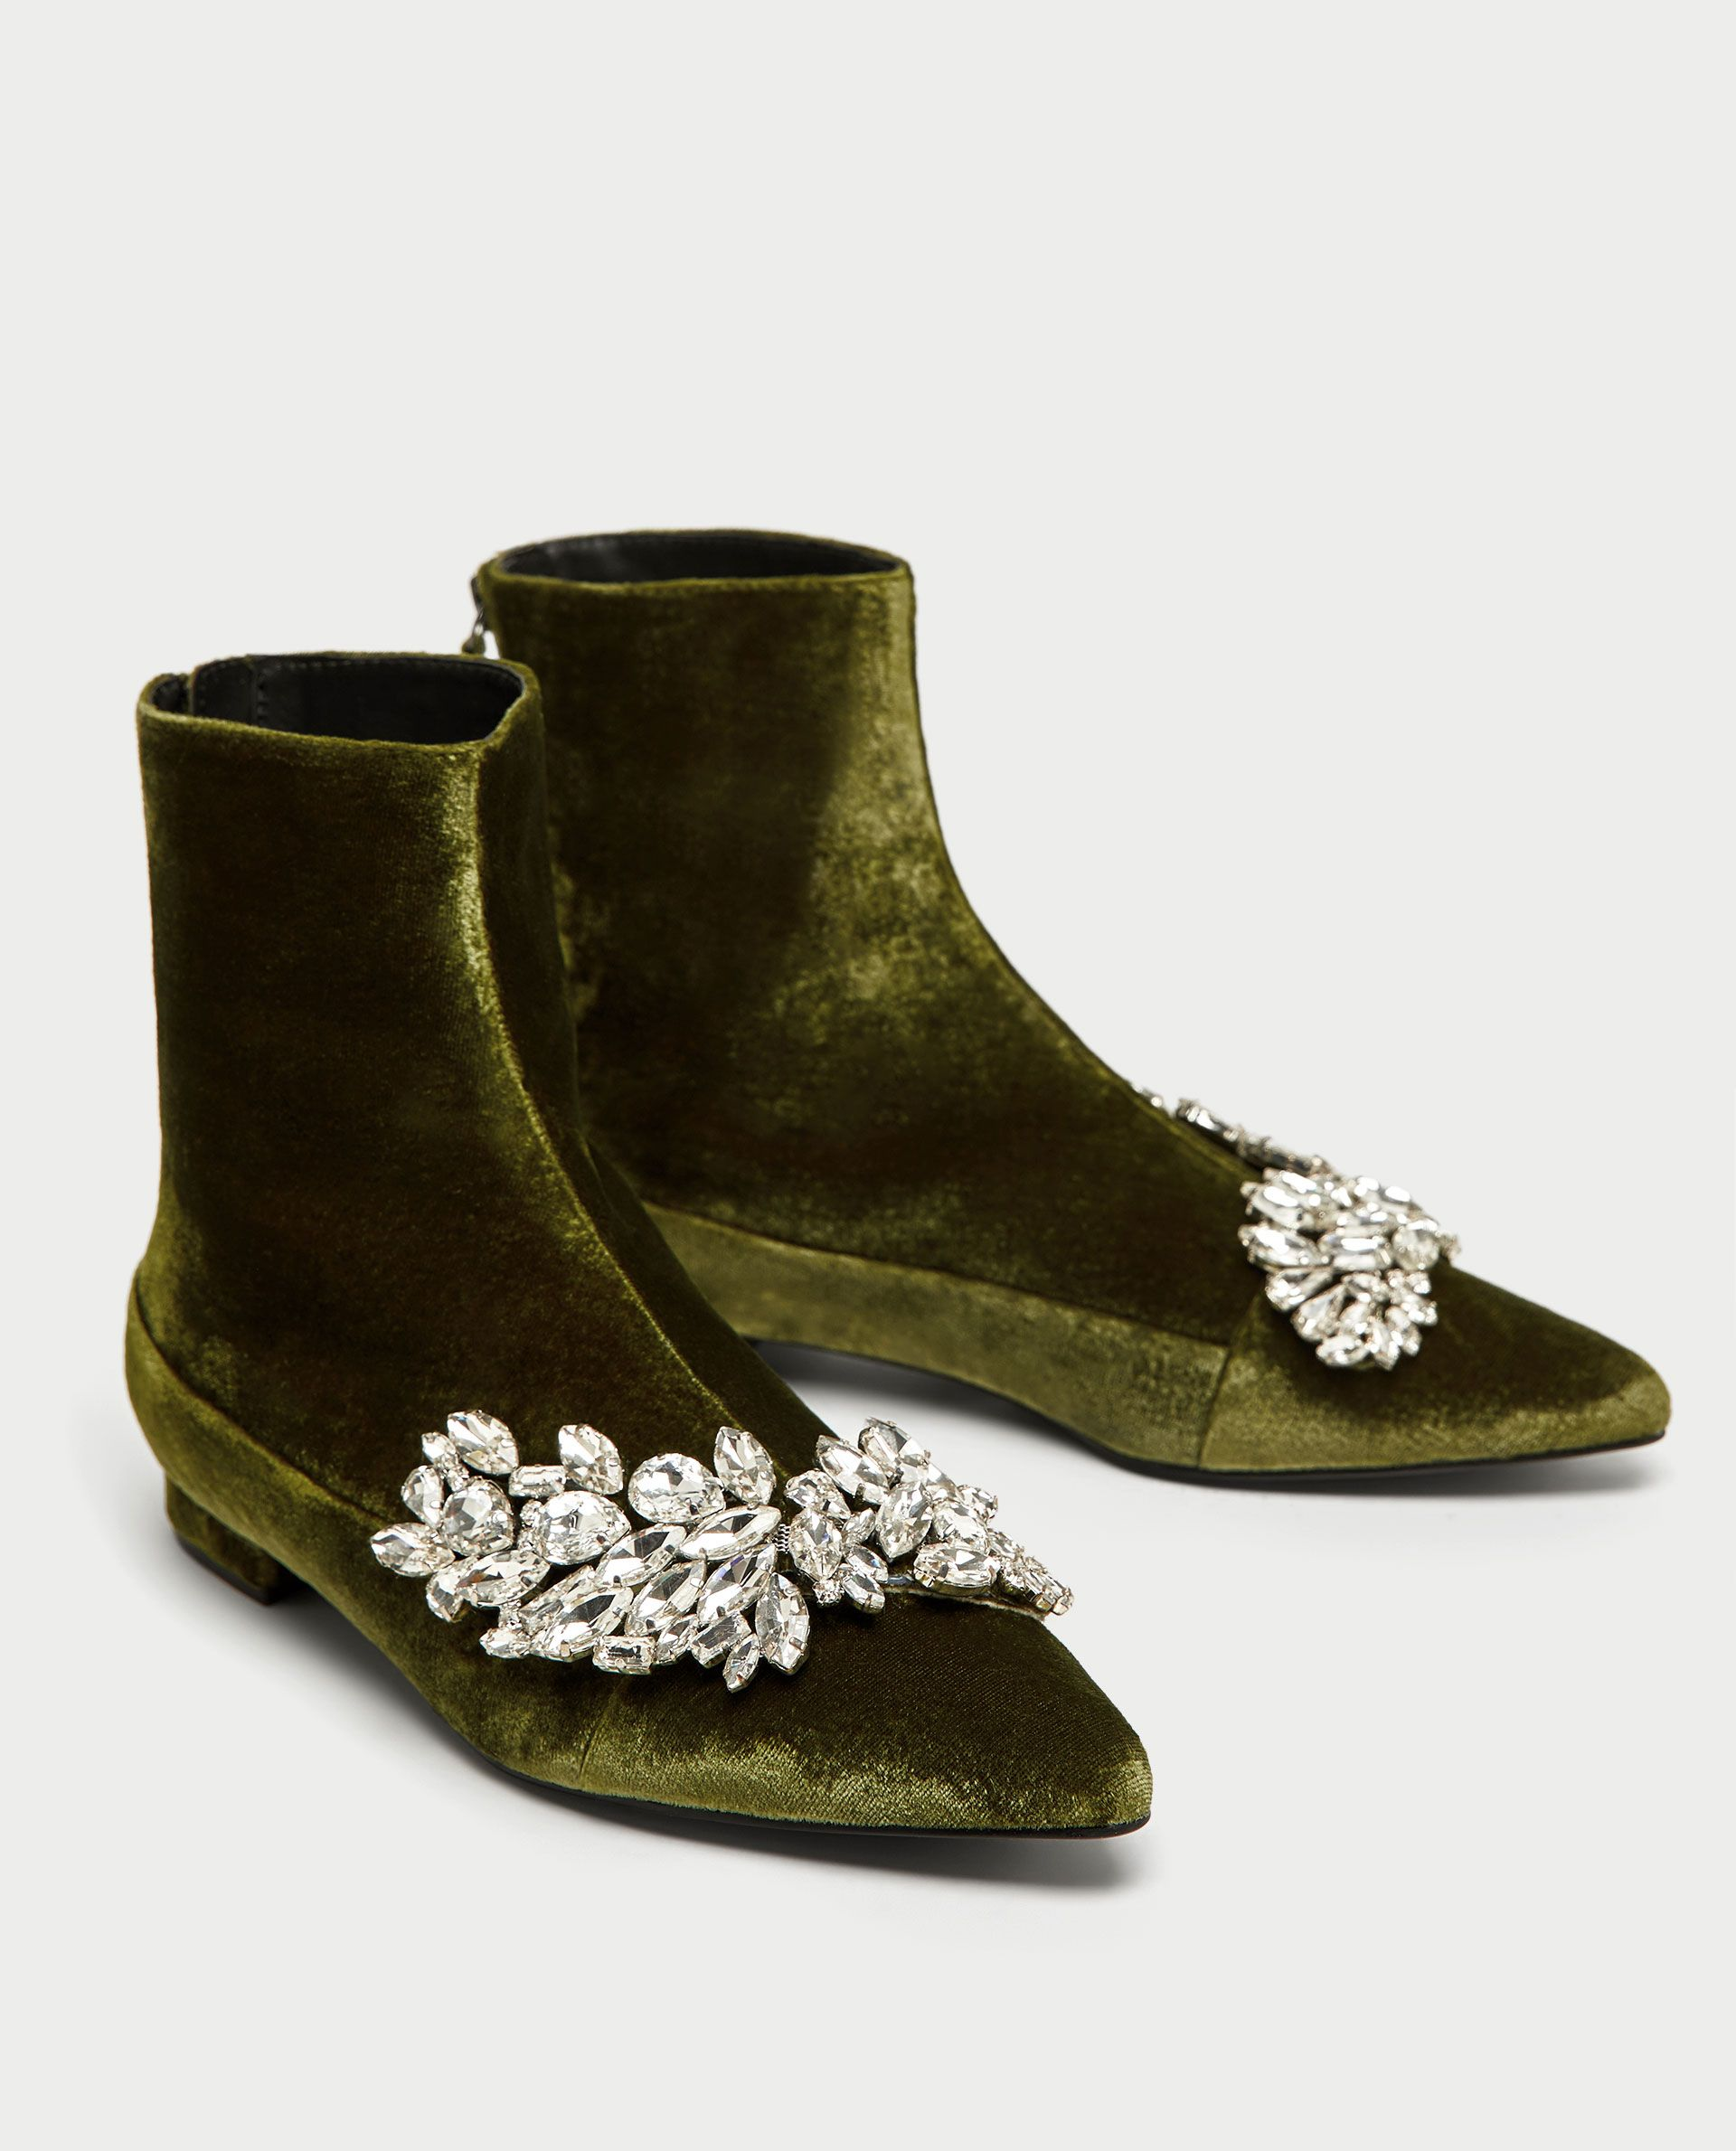 FLAT VELVET ANKLE BOOTS WITH GEM DETAIL - SHOES | ACCESSORIES-SALE-WOMAN